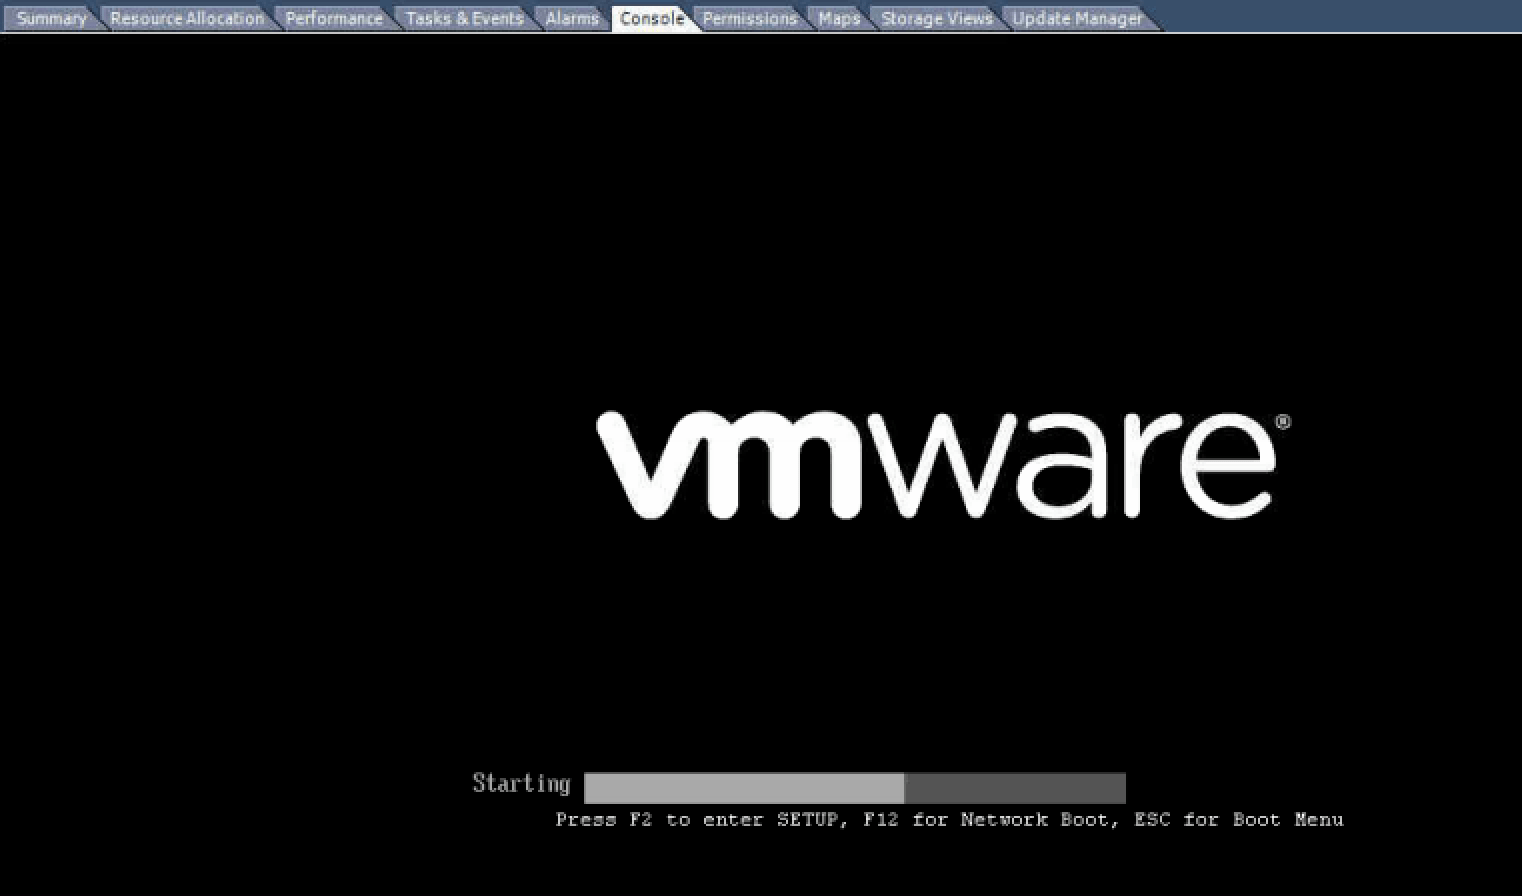 Guest hangs at 'Starting' on VMWare BIOS splash screen - [SOLVED